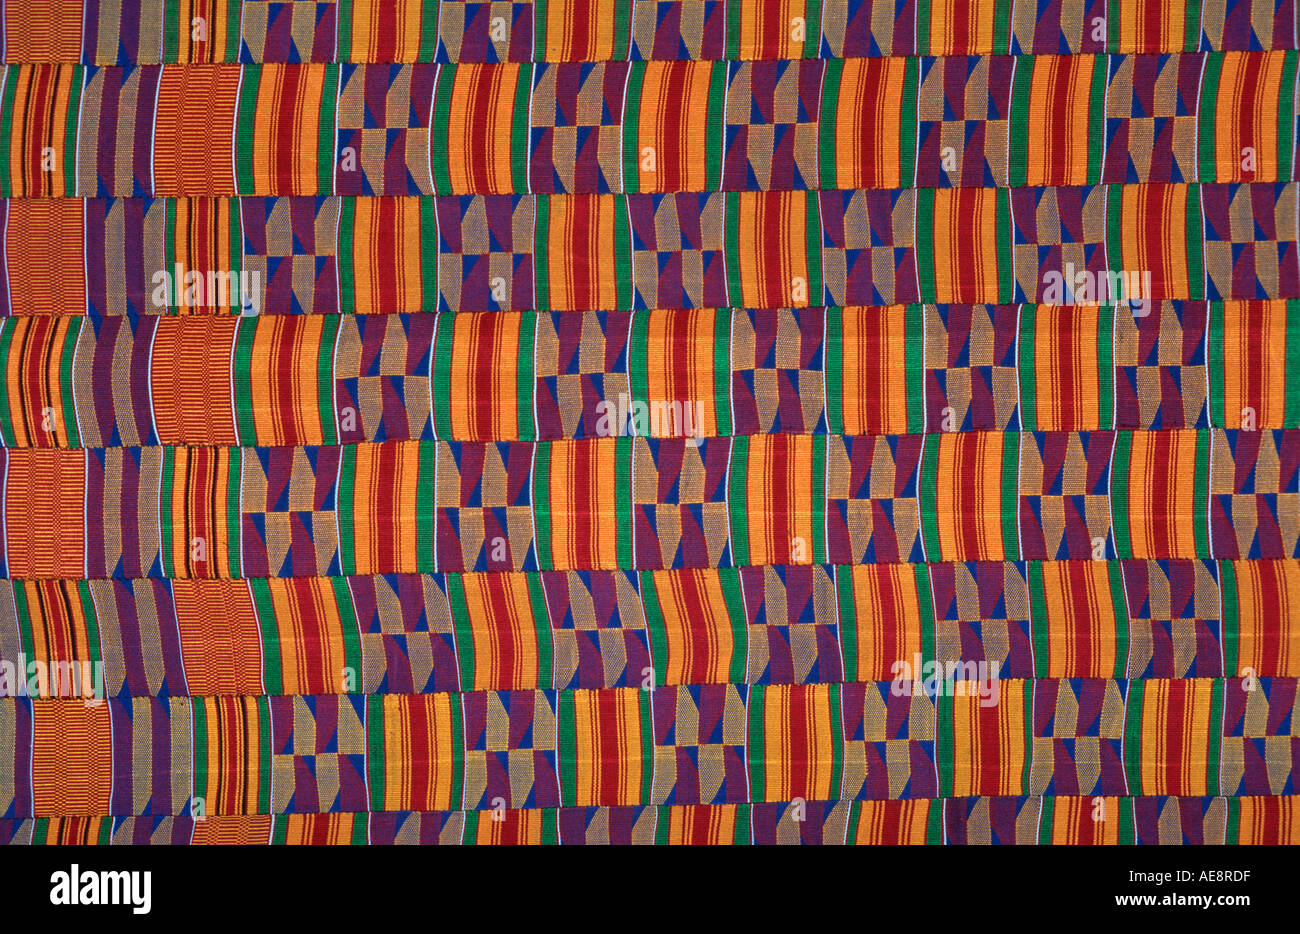 Ceremonial textile from Ghana West Africa Known as Kente cloth Asante people - Stock Image